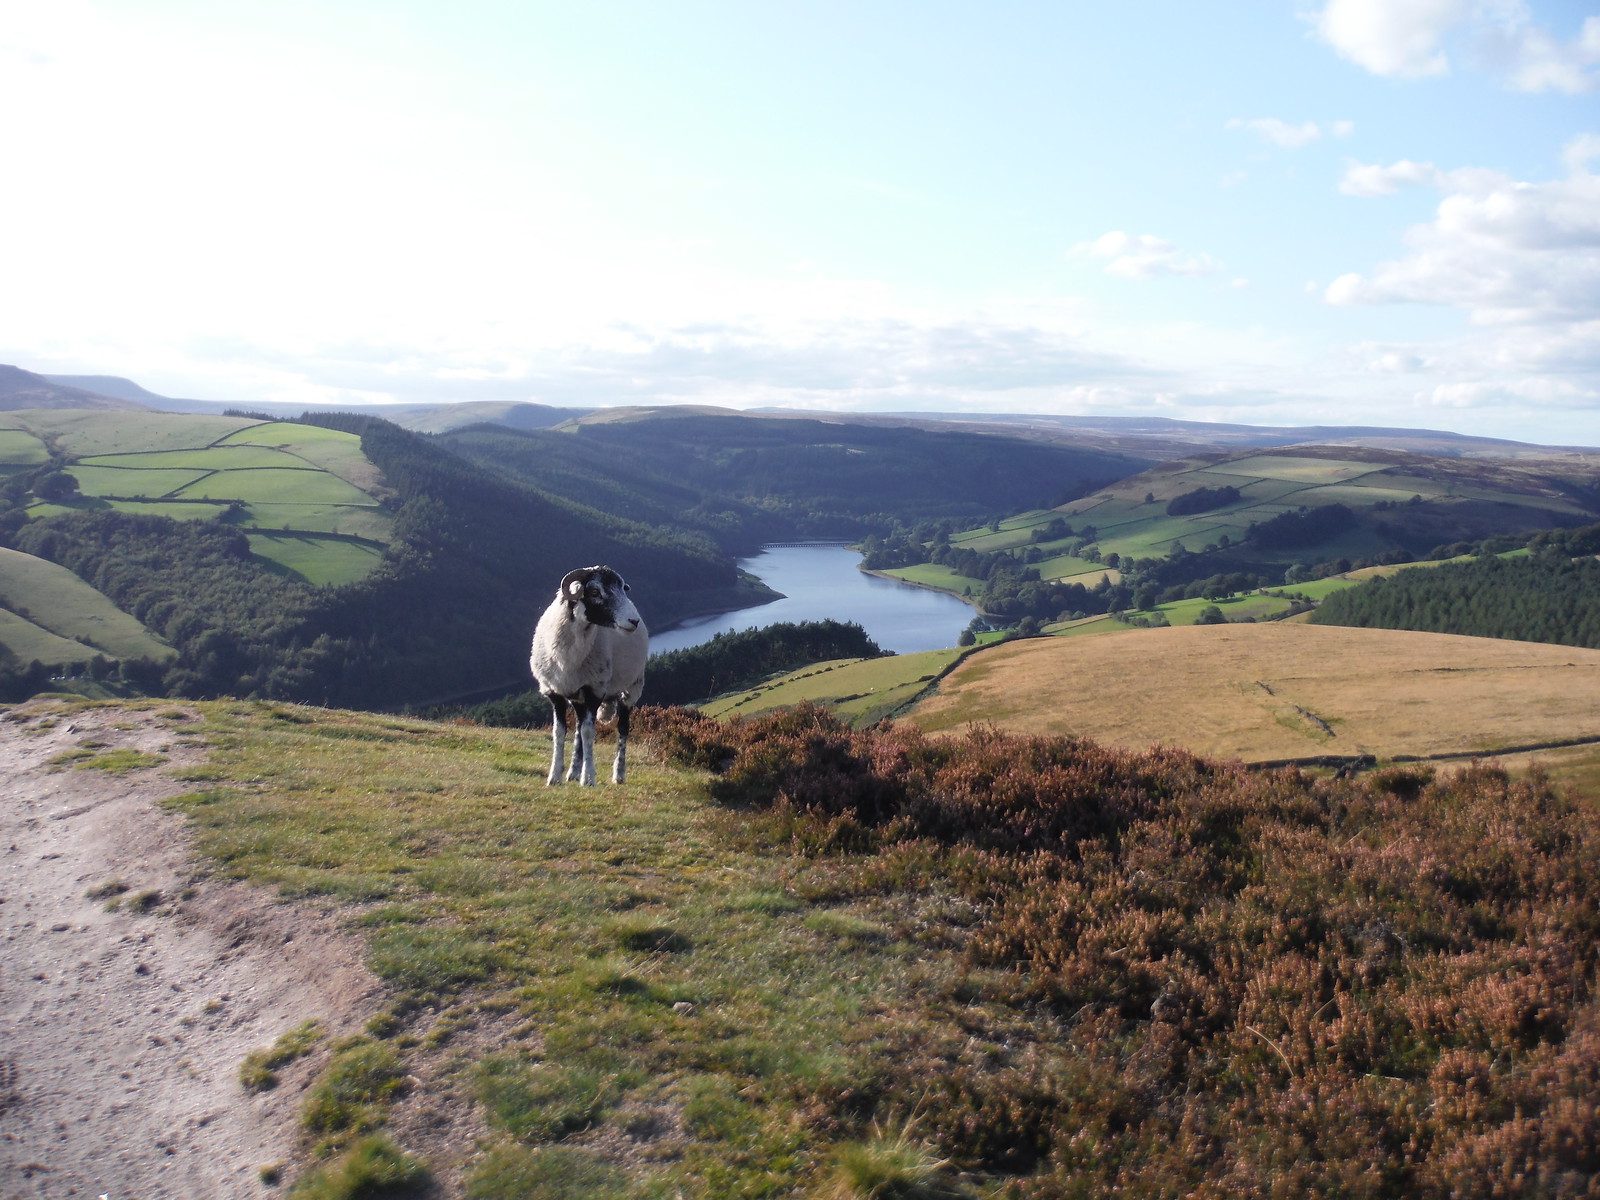 Evening View (with sheep) up Ladybower Reservoir, from Six-Way Junction SWC Walk 348 - Ladybower Inn Circular (via Derwent Edges and Strines)